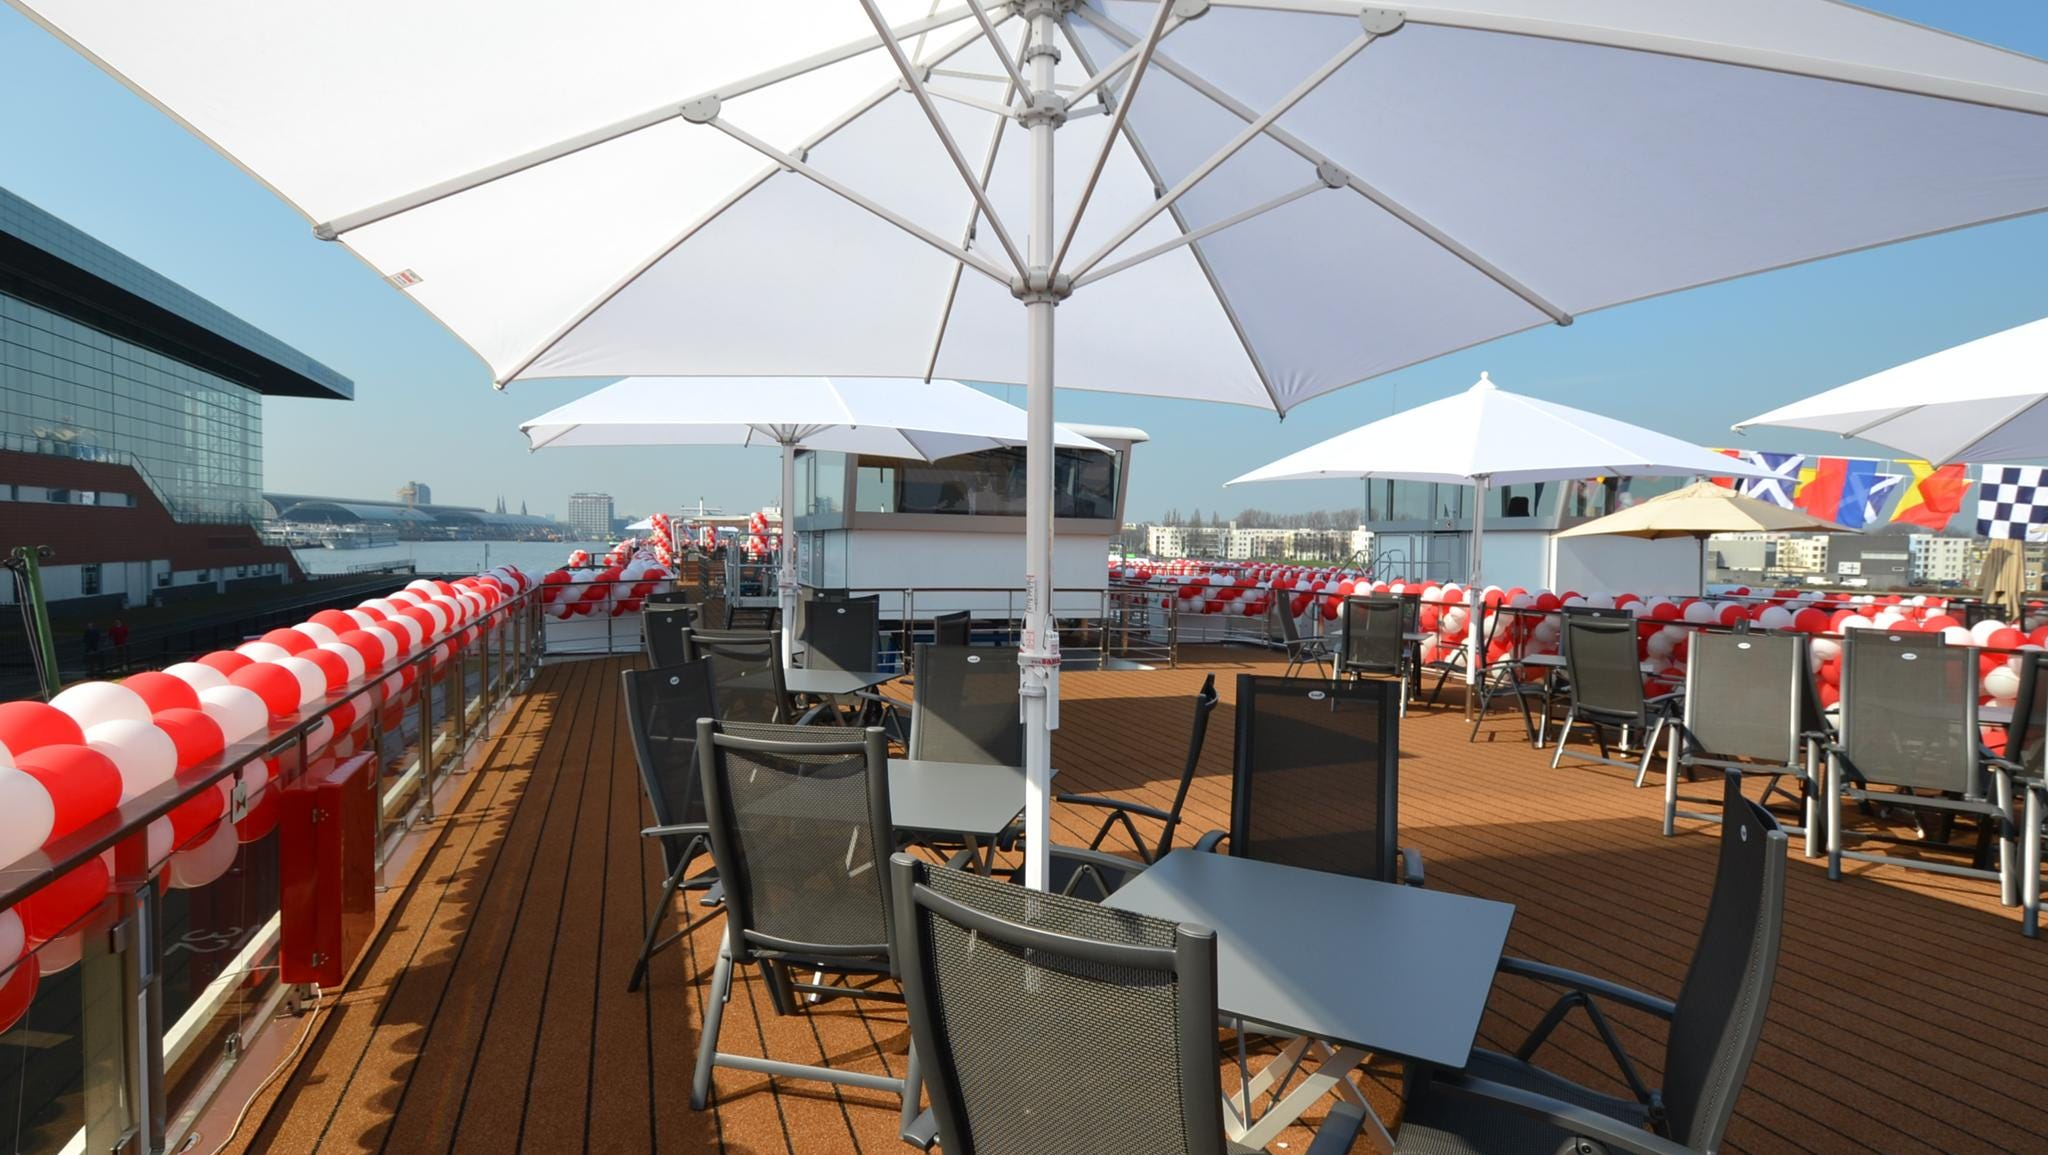 Called the Sun Deck, the outdoor rooftop deck of the Viking Odin offers sheltered lounge chairs and tables from where passengers can watch the passing scenery. A caveat: The Sun Deck is closed when the ship passes through regions with low bridges.